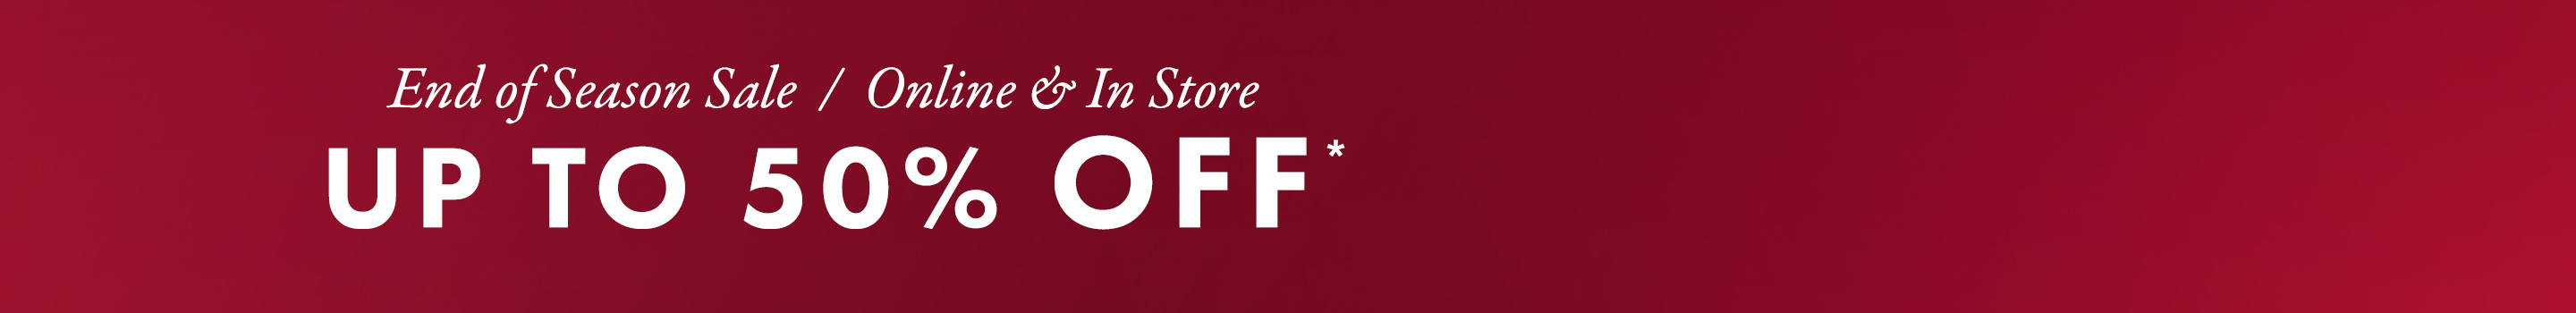 red end of season banner showing 50% off selected styles